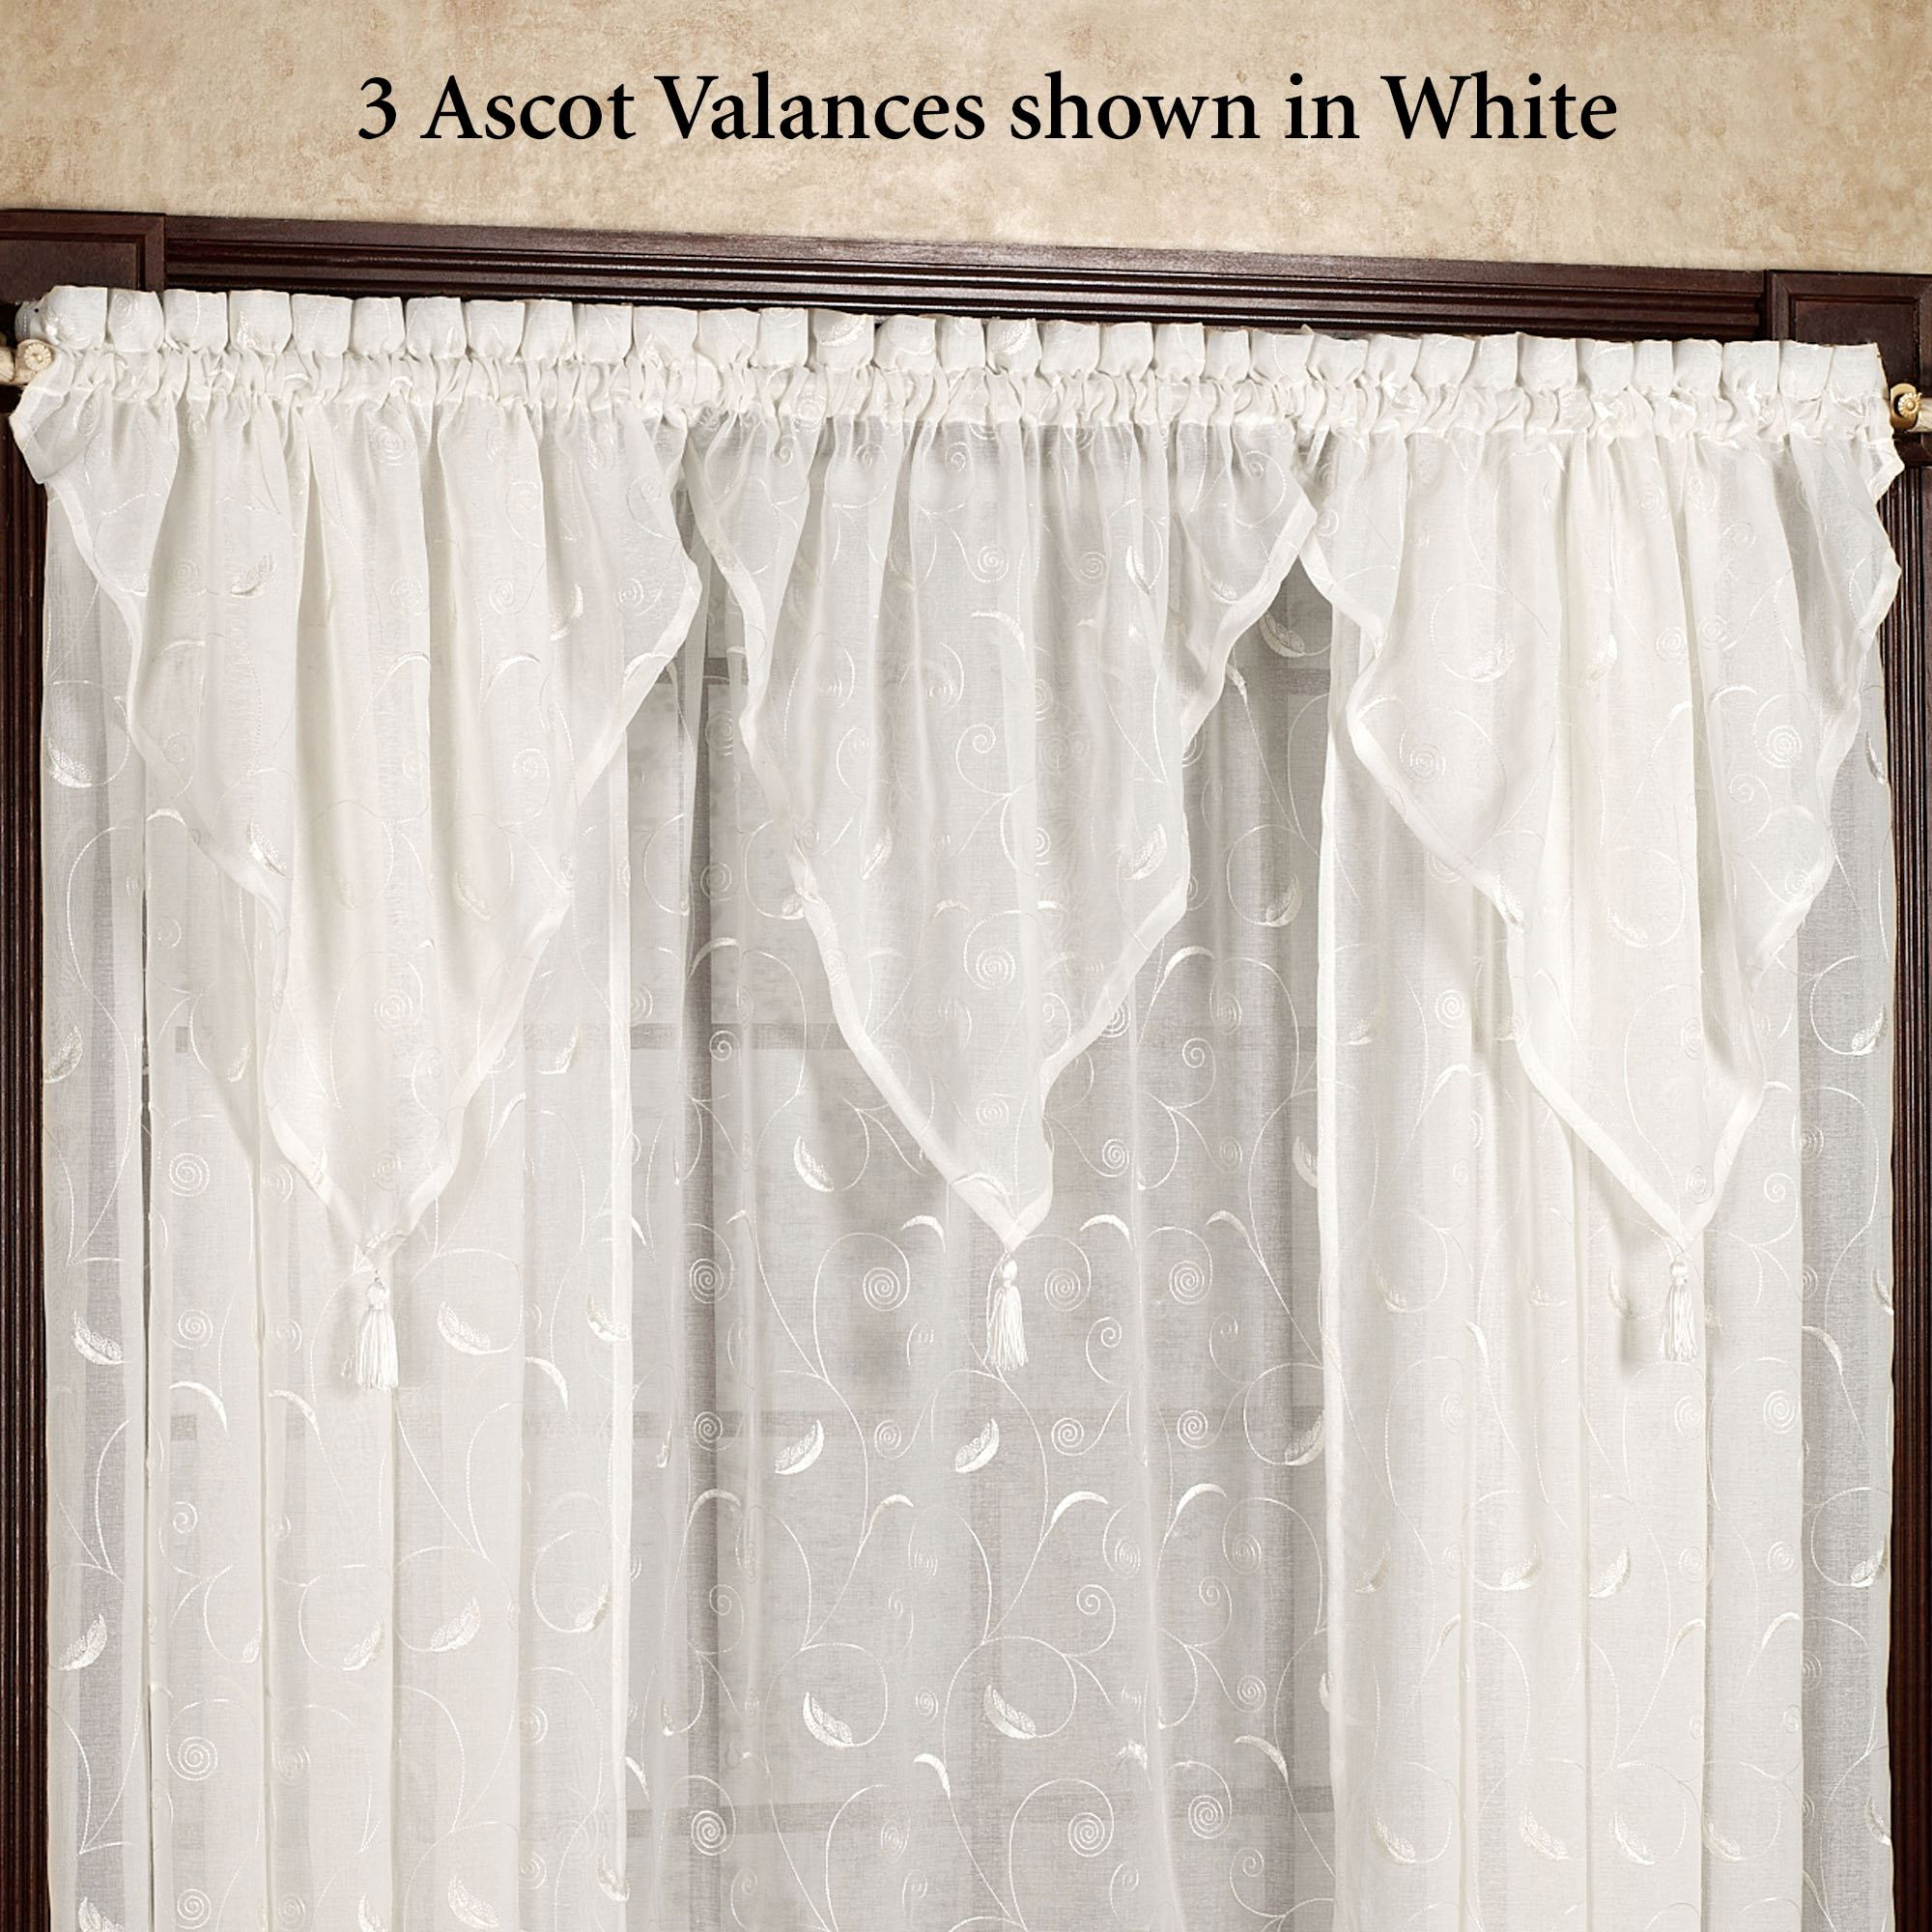 osc atlantis linen cape valances multi catalog valance index may ascot